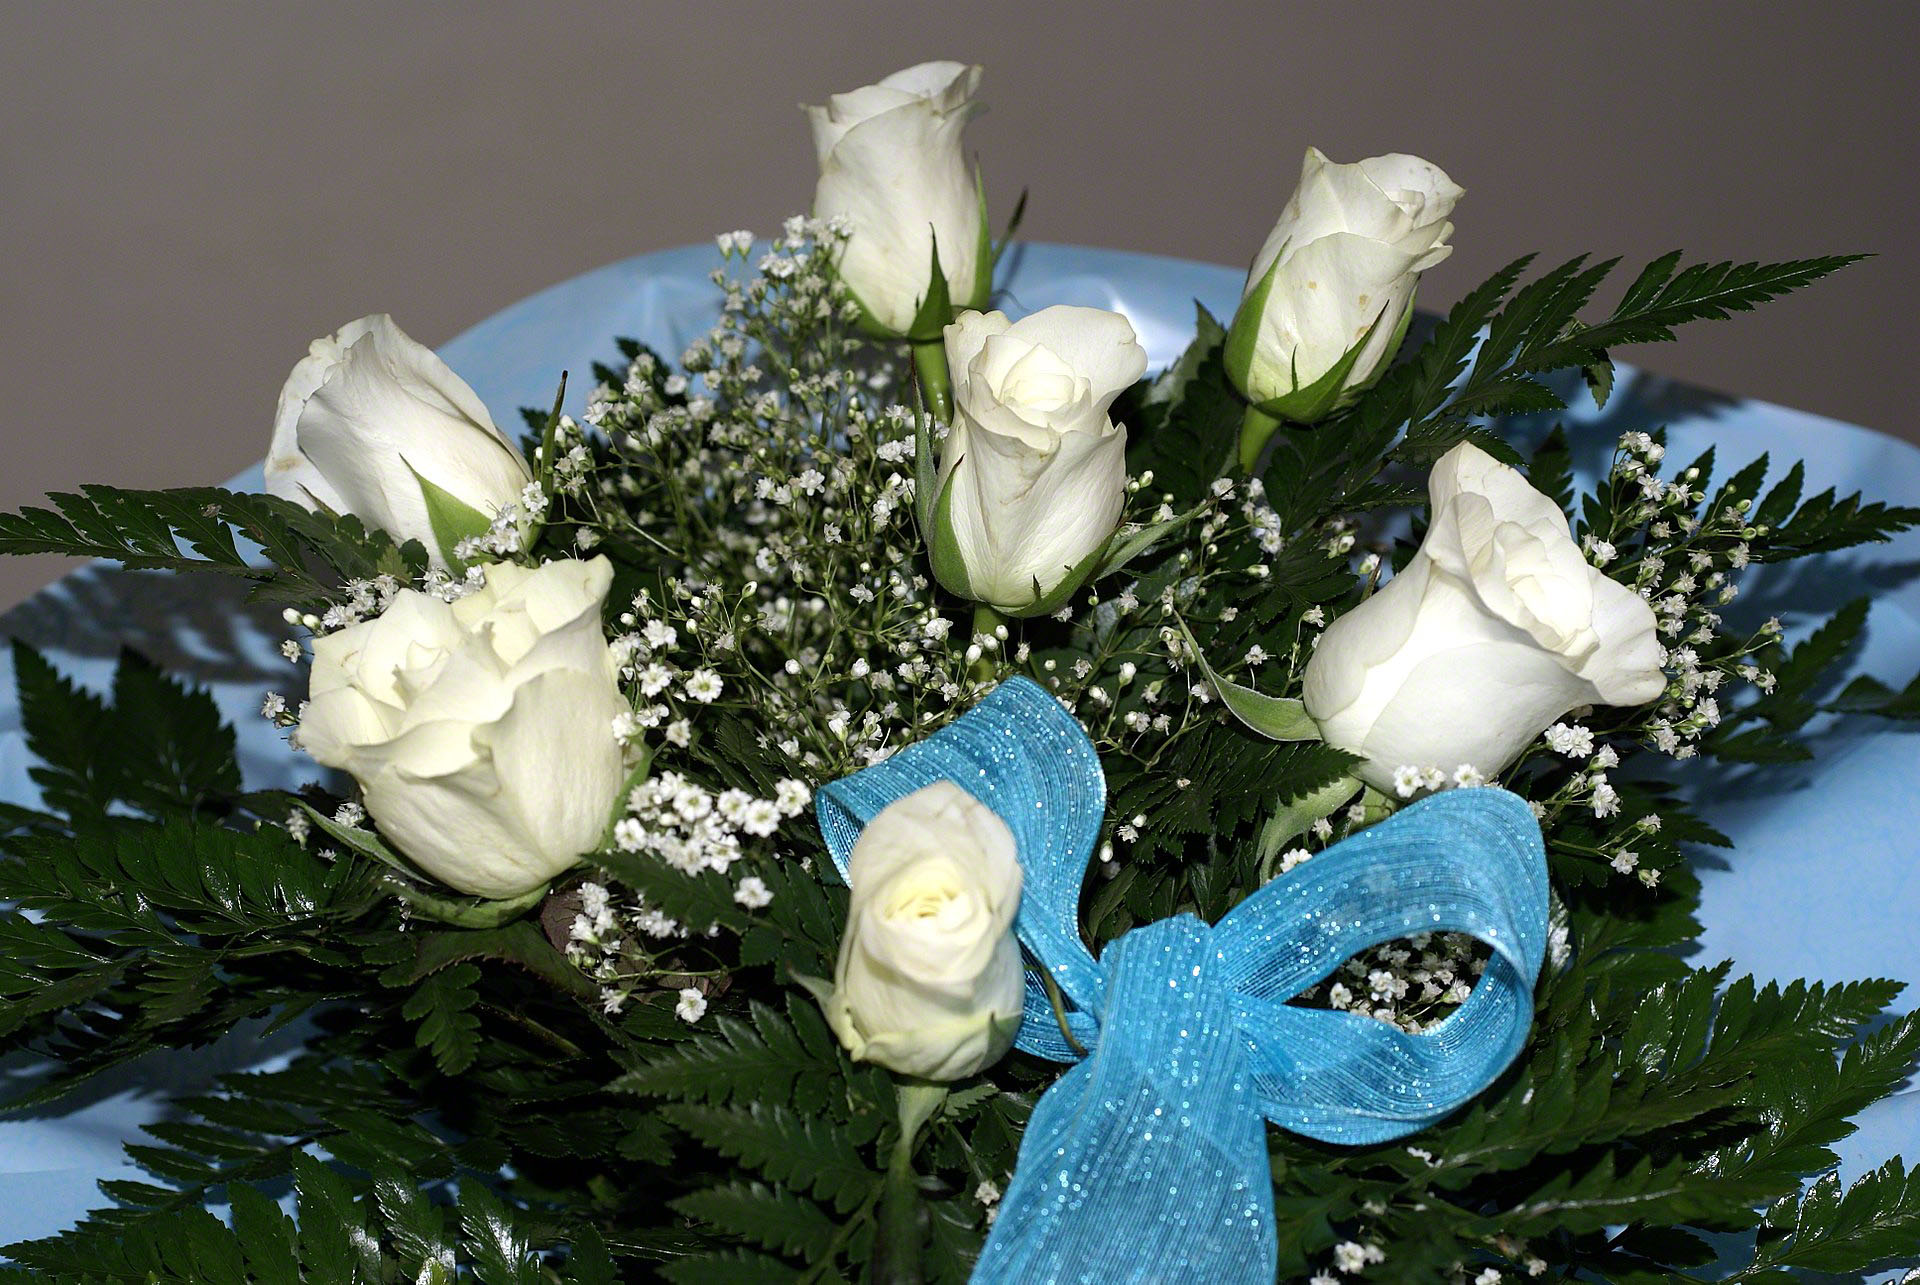 http://www.fabiovisentin.com/photography/photo/12/white-rose-bouquet-0268118.jpg